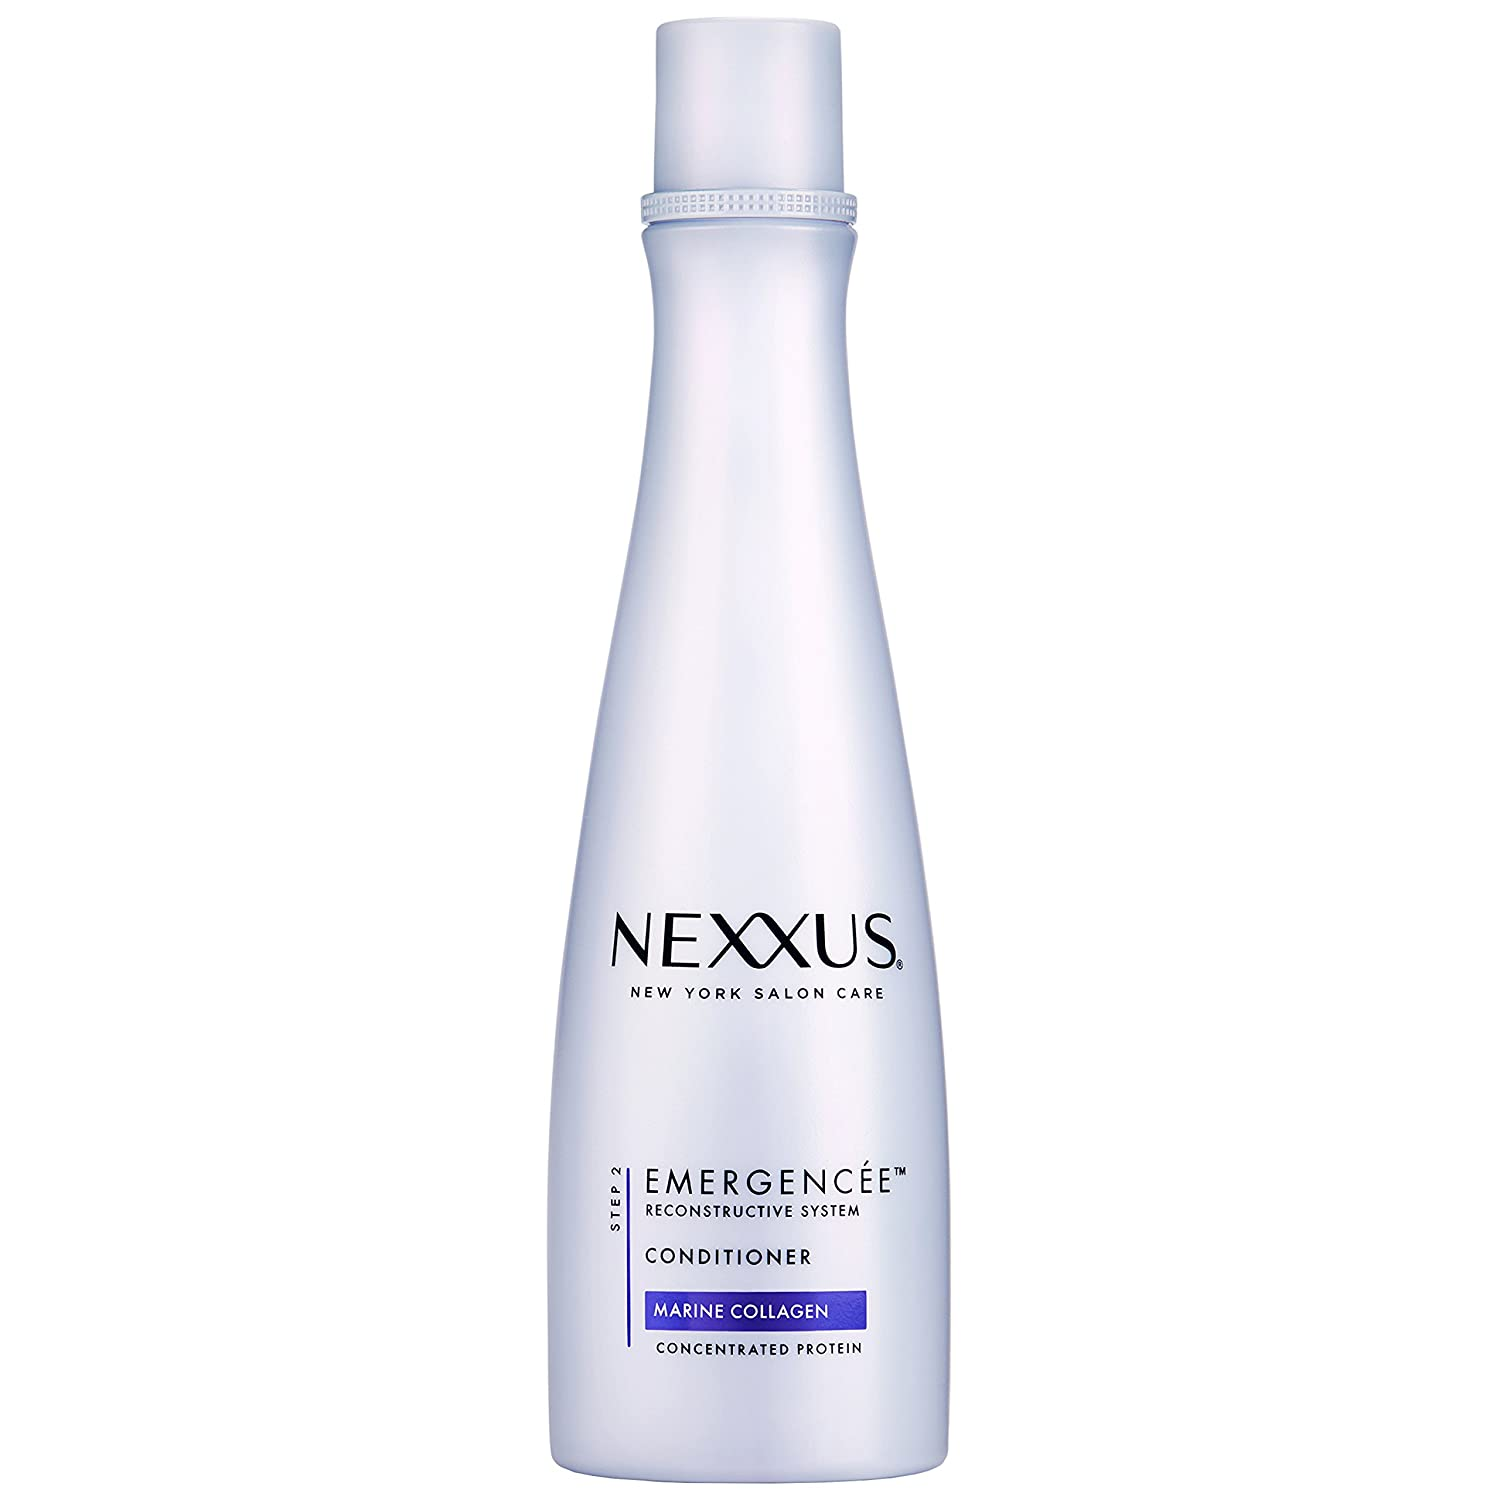 Nexxus Emergencée Conditioner, for Weak and Damaged Hair 13.5 oz